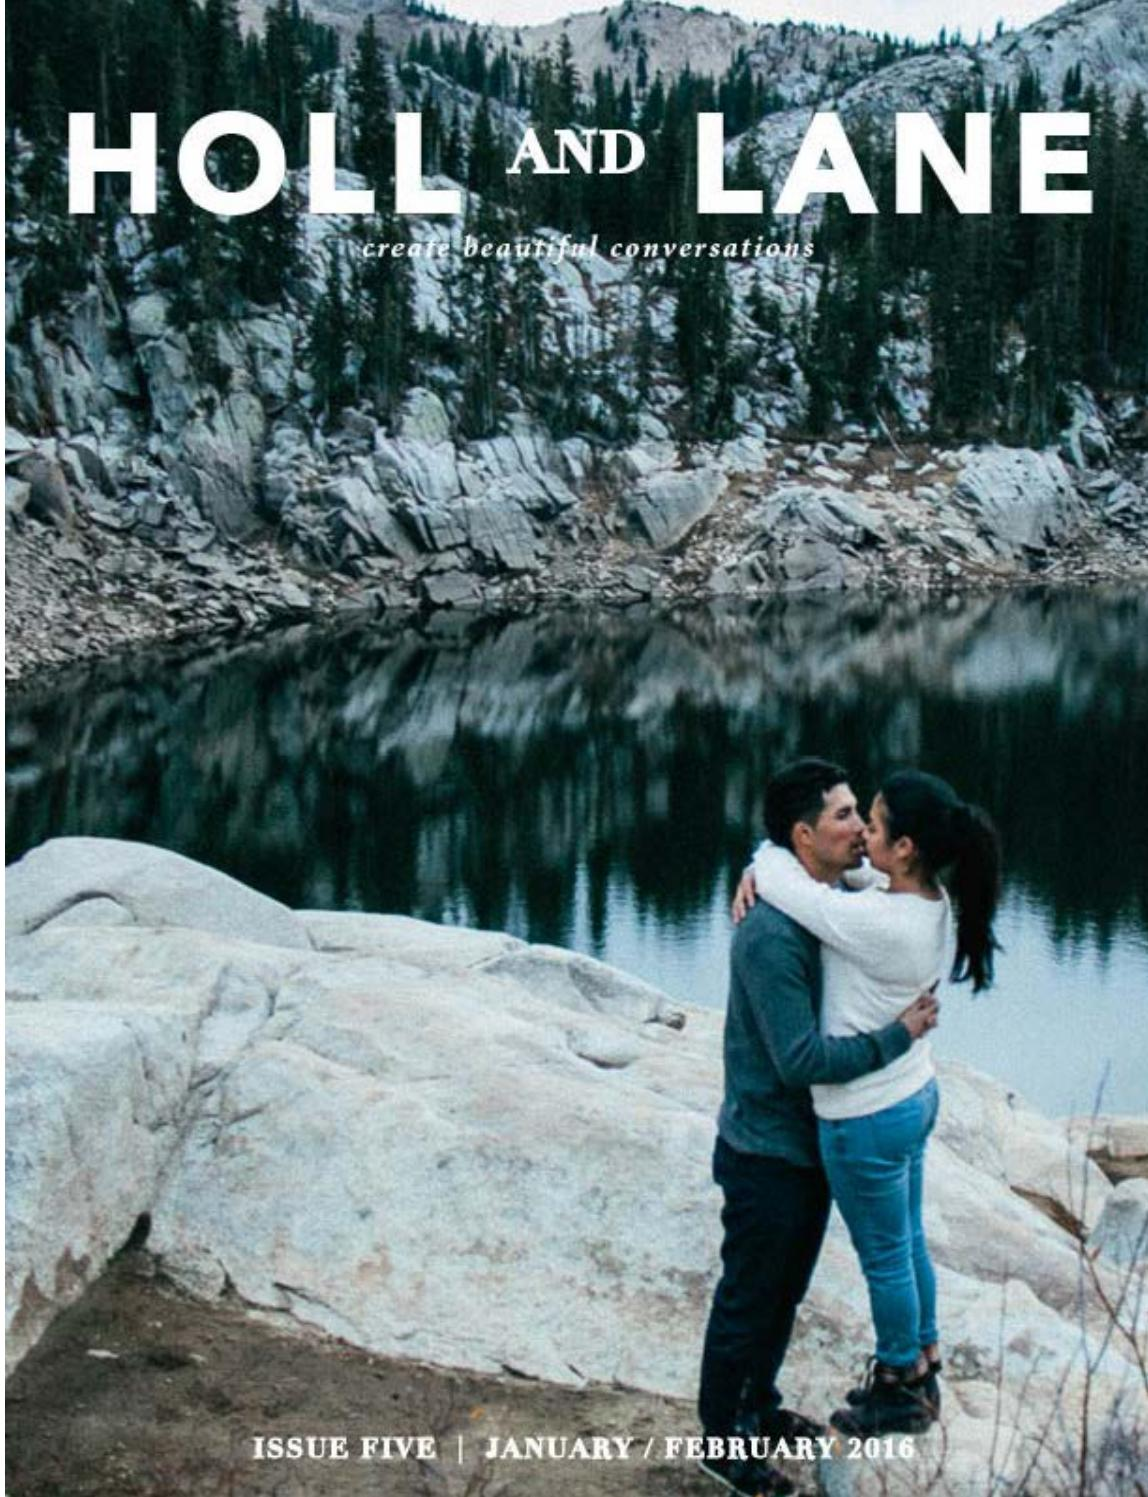 Holl & Lane, Issue 5 Preview by Holl and Lane - issuu